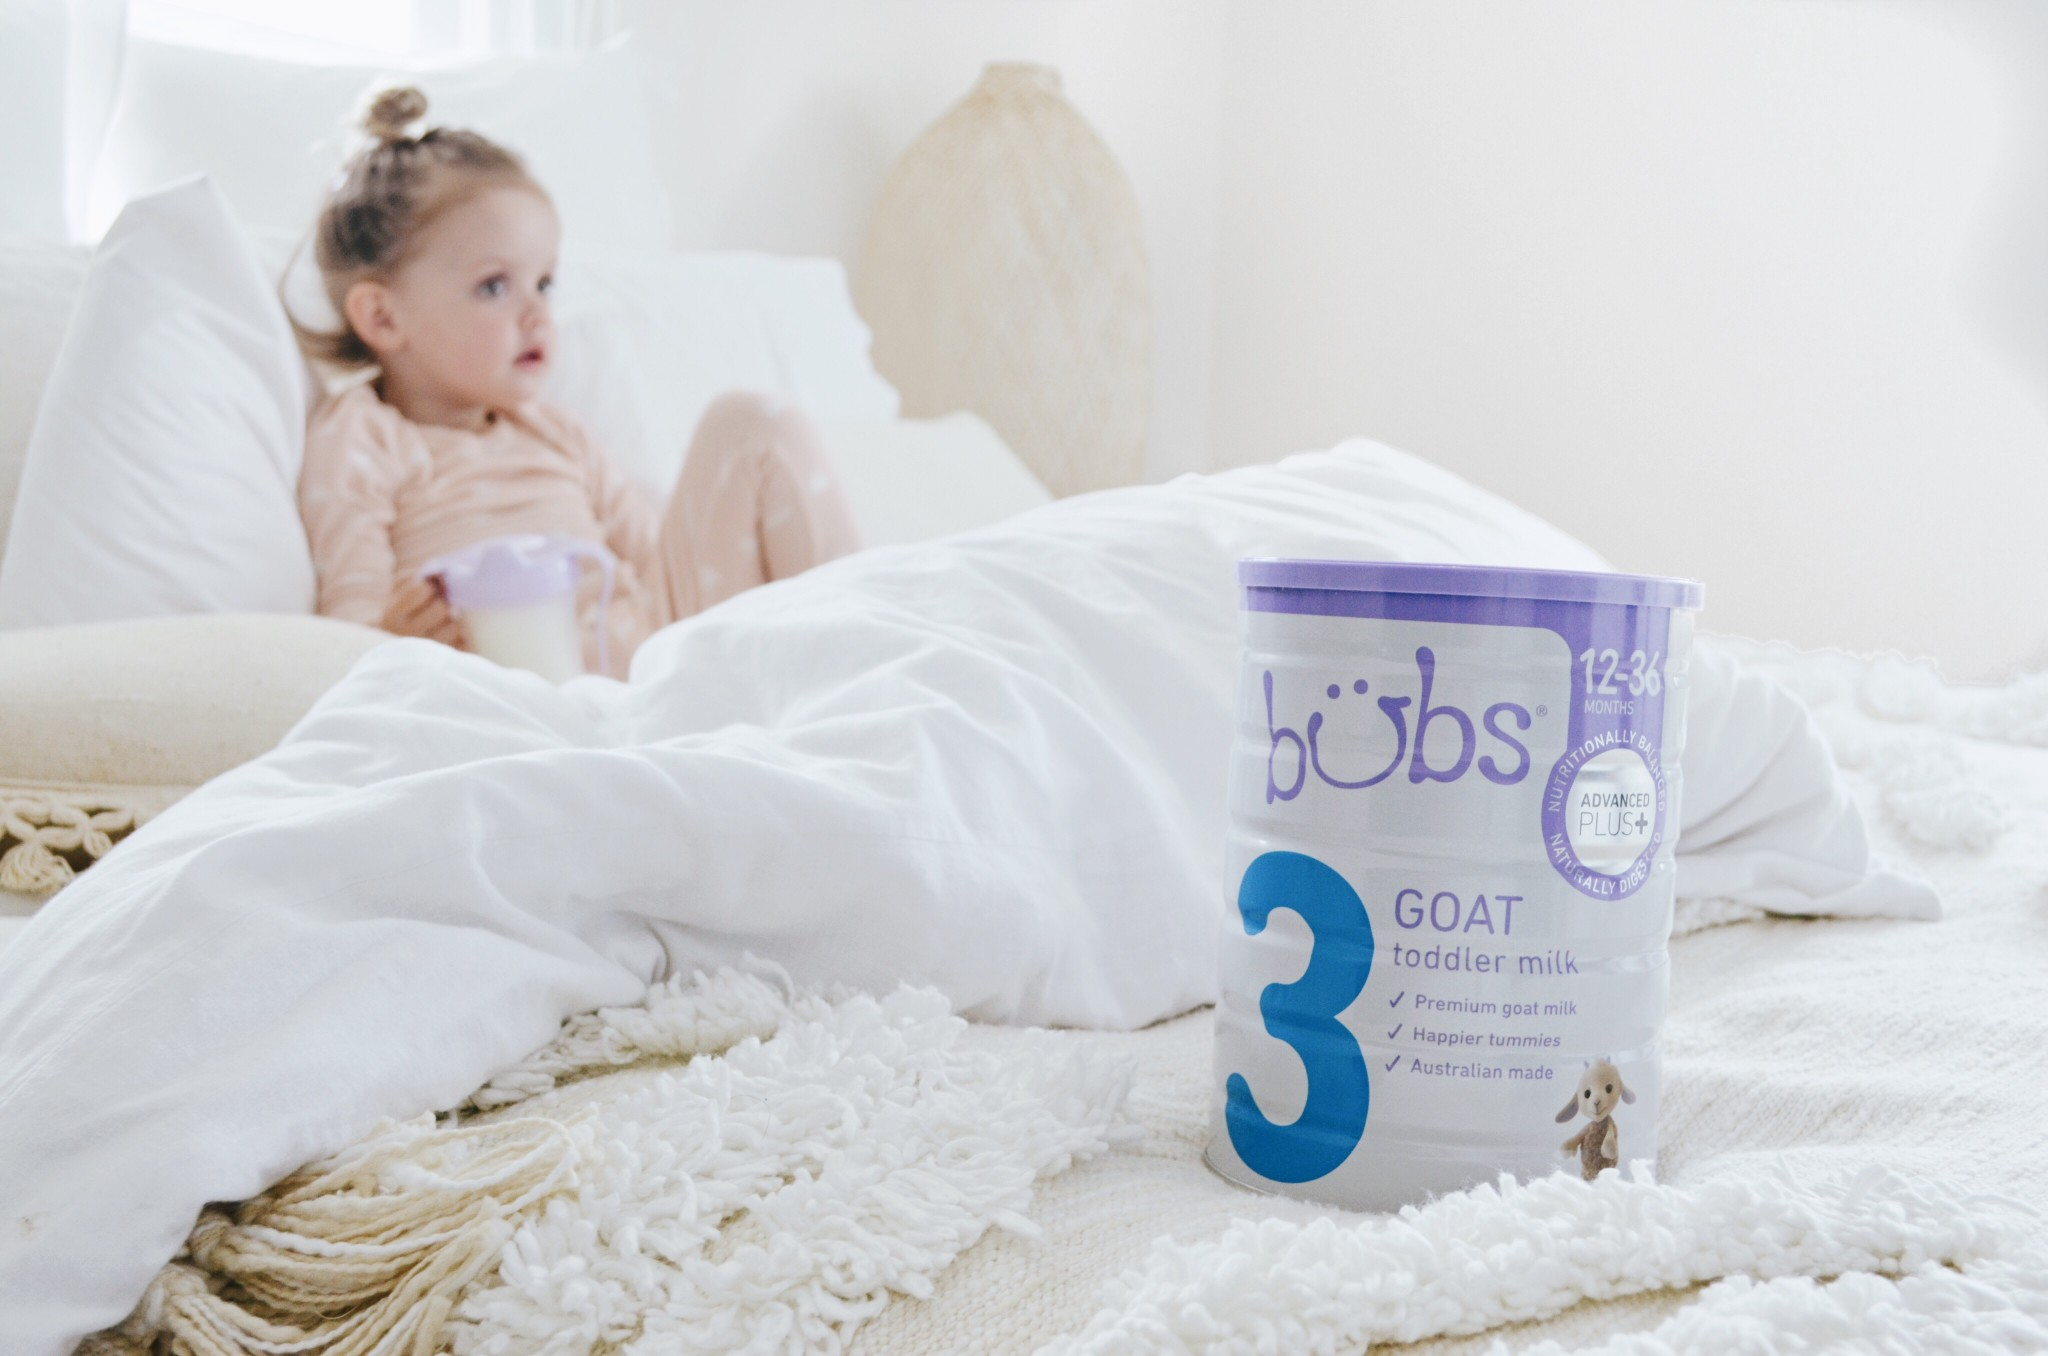 Bubs Goat Toddler Milk for the win.